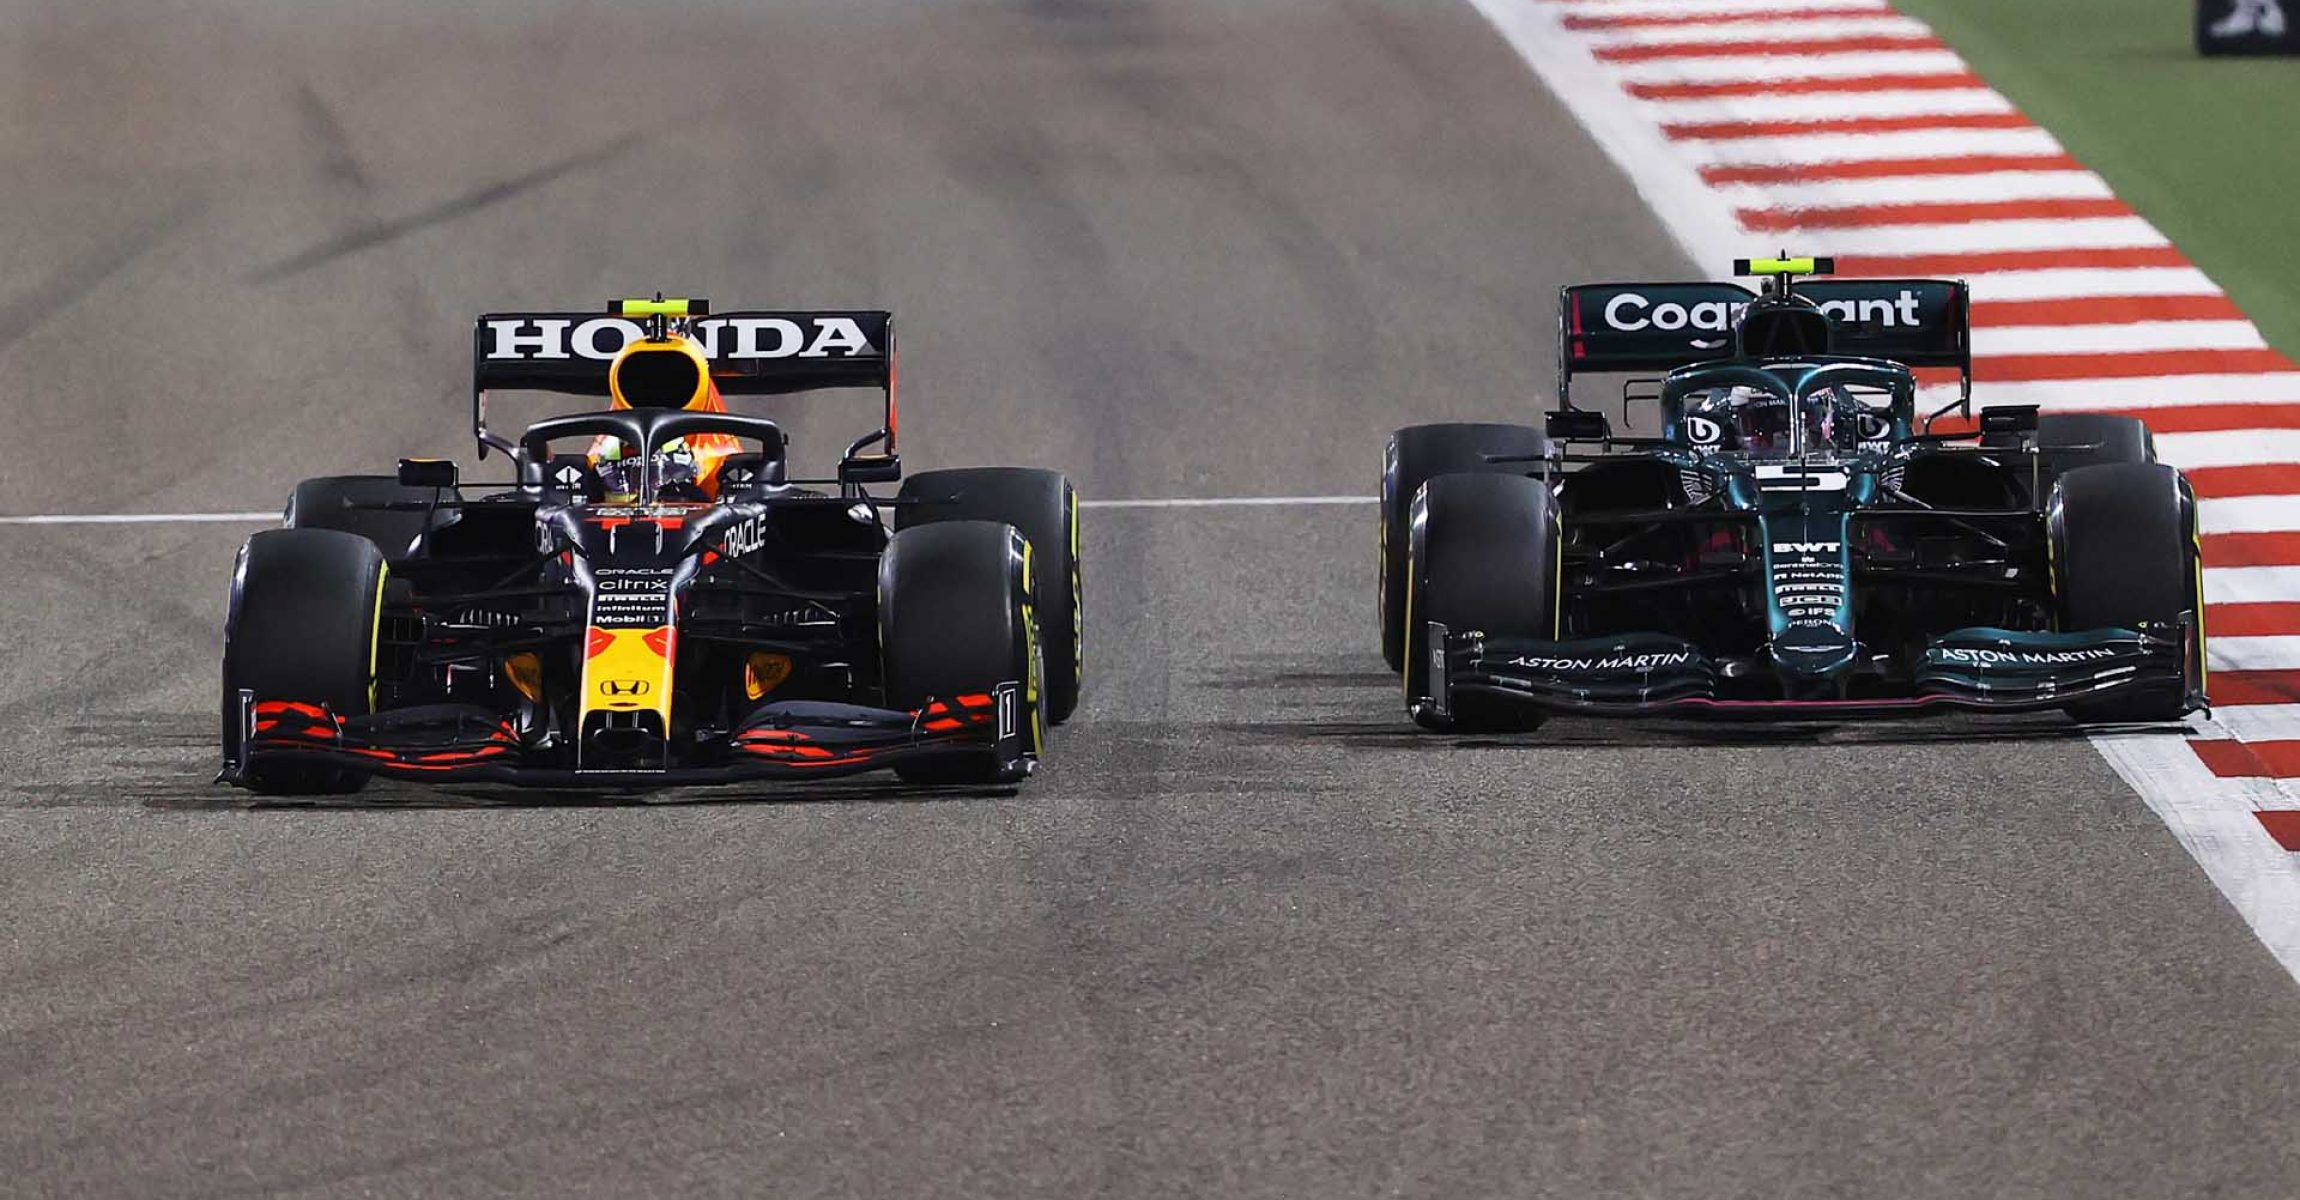 BAHRAIN, BAHRAIN - MARCH 28: Sergio Perez of Mexico driving the (11) Red Bull Racing RB16B Honda and Sebastian Vettel of Germany driving the (5) Aston Martin AMR21 Mercedes compete for position on track during the F1 Grand Prix of Bahrain at Bahrain International Circuit on March 28, 2021 in Bahrain, Bahrain. (Photo by Bryn Lennon/Getty Images)